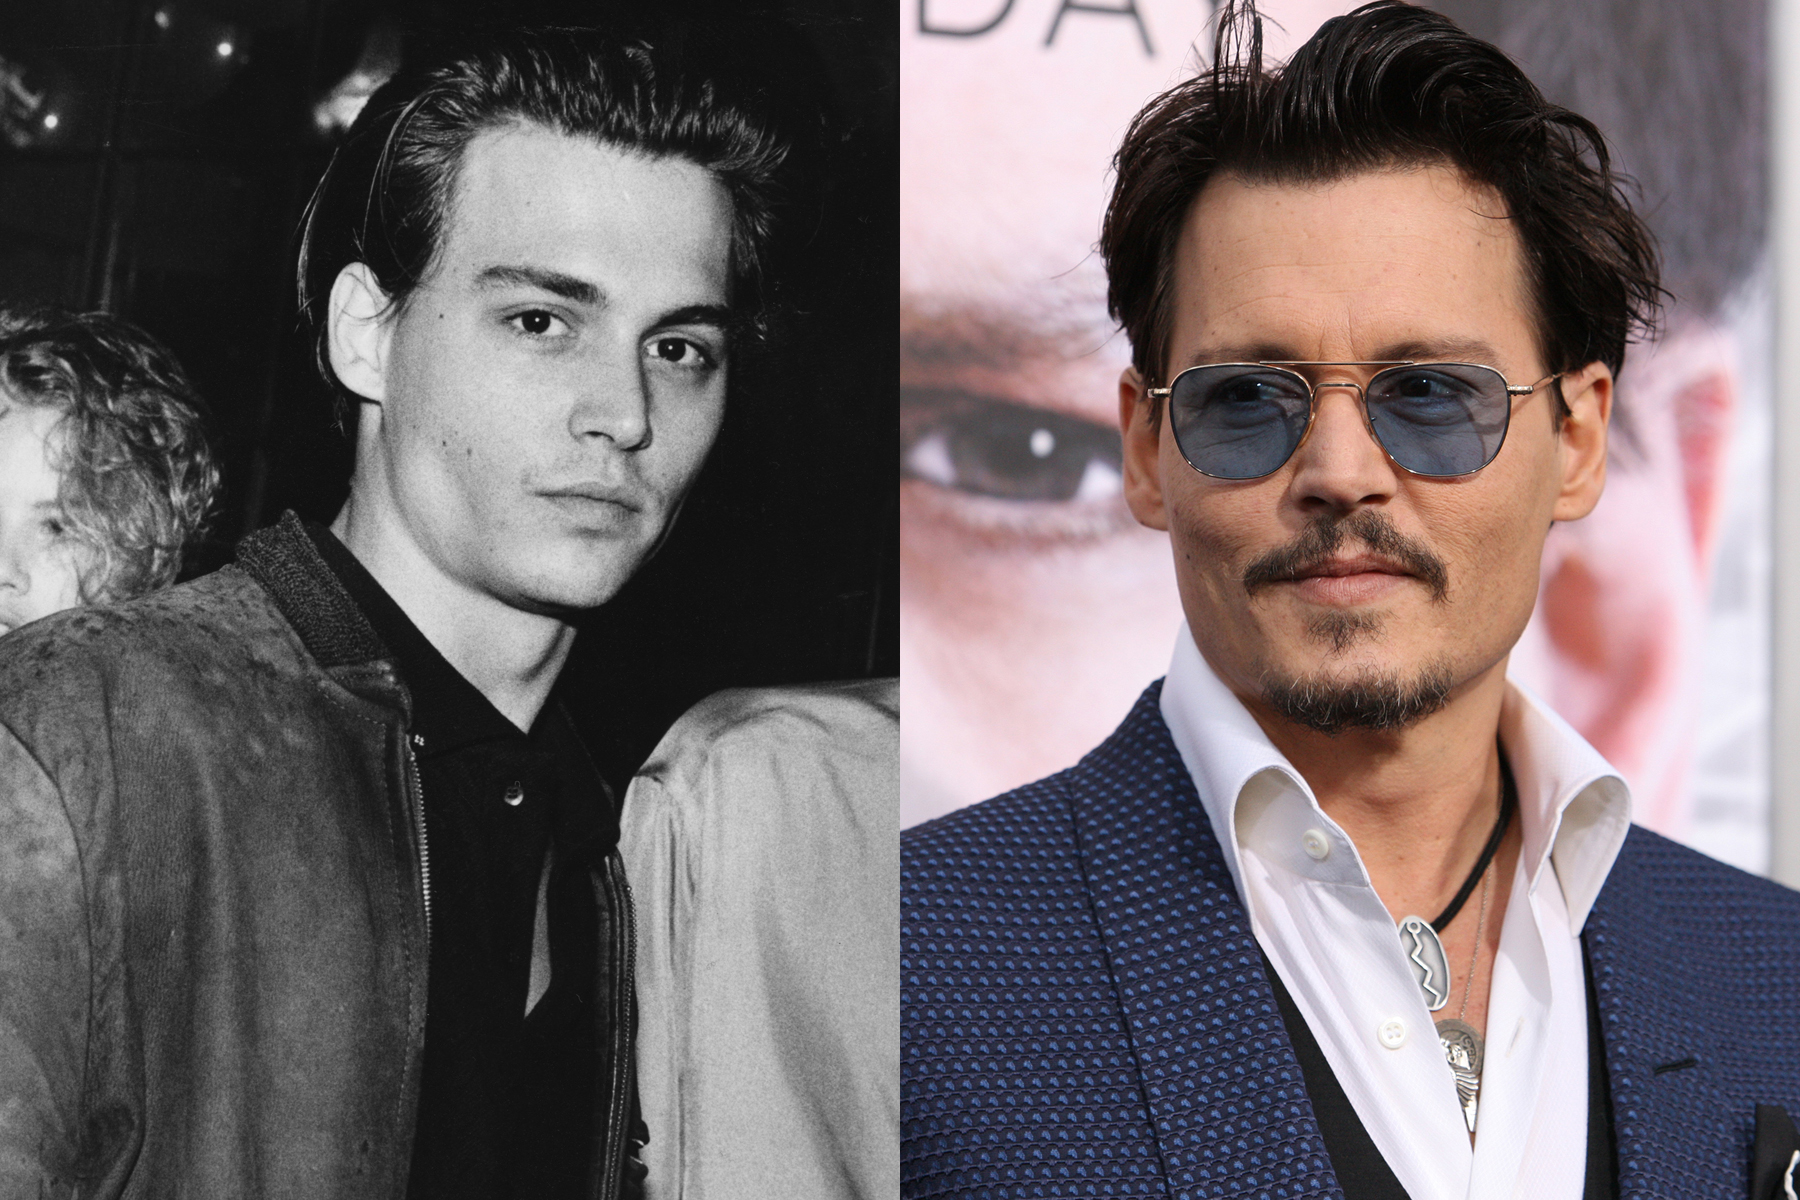 15 Hot Guys From The '80s Who've Only Gotten Hotter